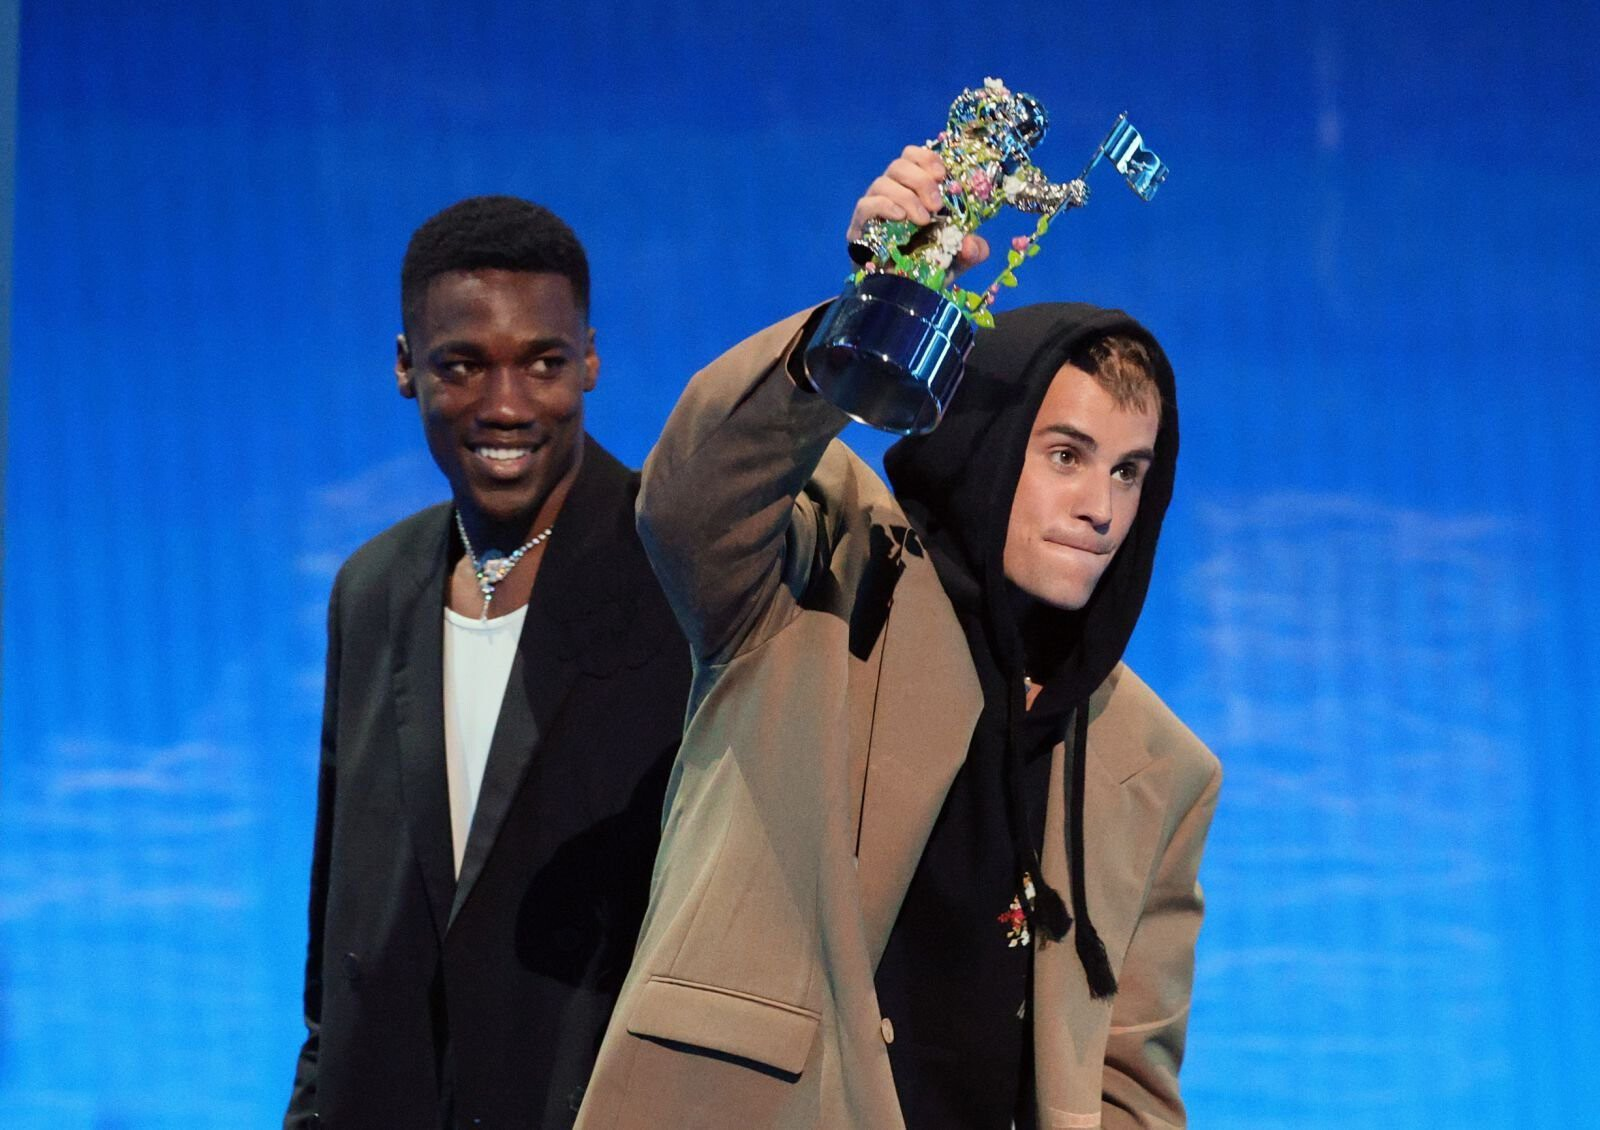 <i>Theo Wargo/Getty Images</i><br/>Giveon and Justin Bieber accept the award for Best Pop. Bieber was also awarded Artist of the Year.